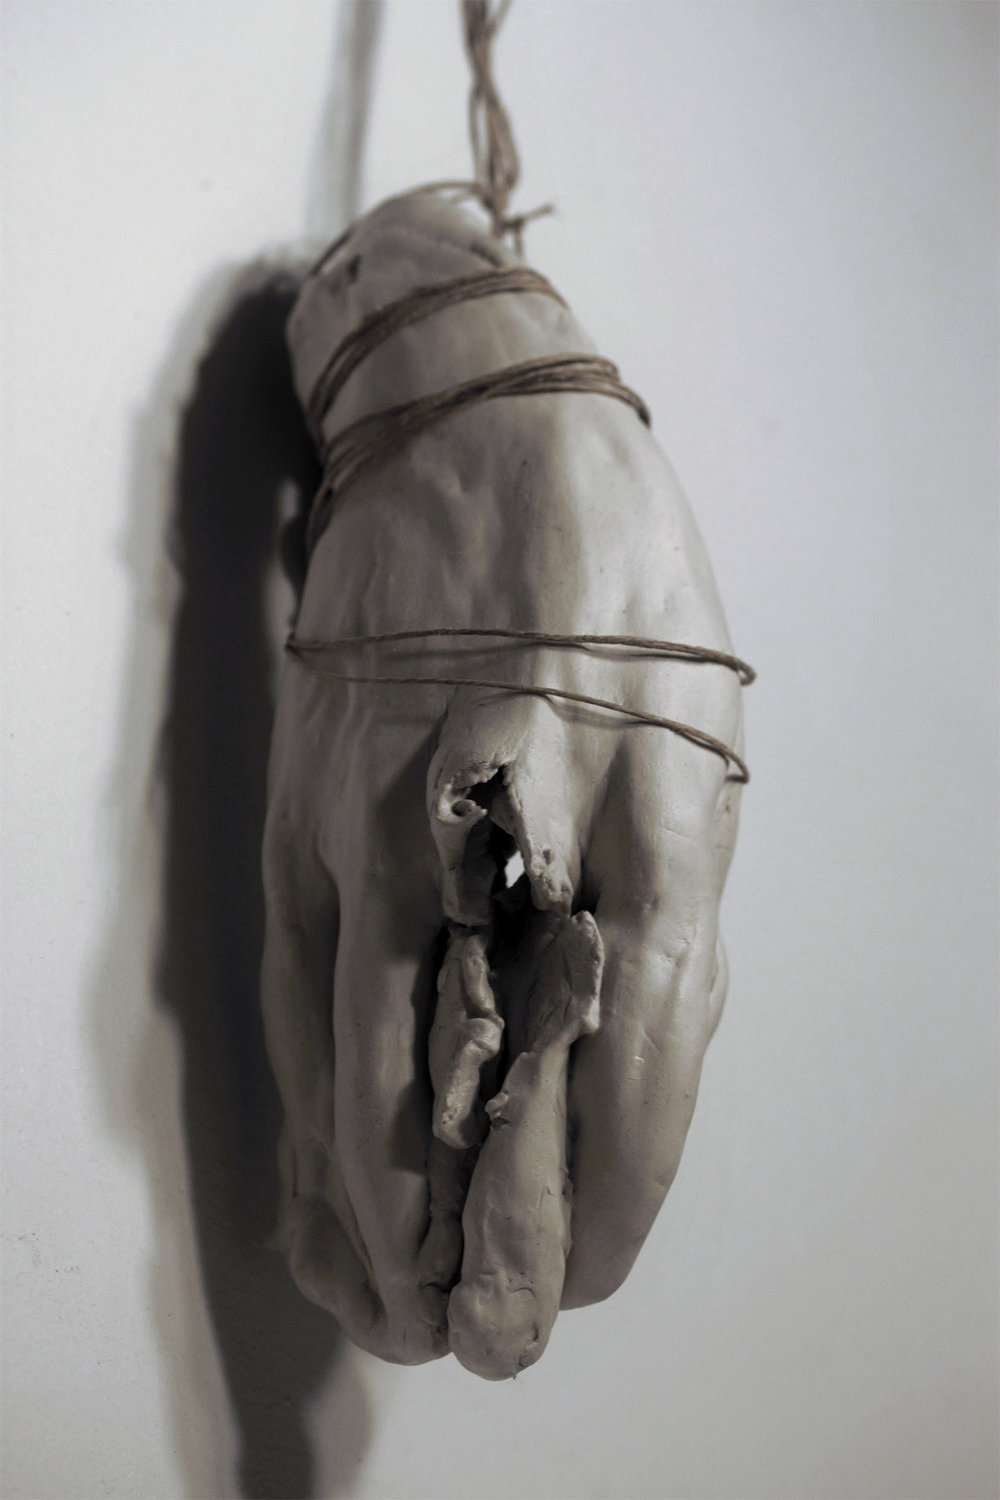 Relicario II  , 2015. Clay and cord, 6 x 3 x 3 inches (15.3 x 7.6 x 7.6 cm).